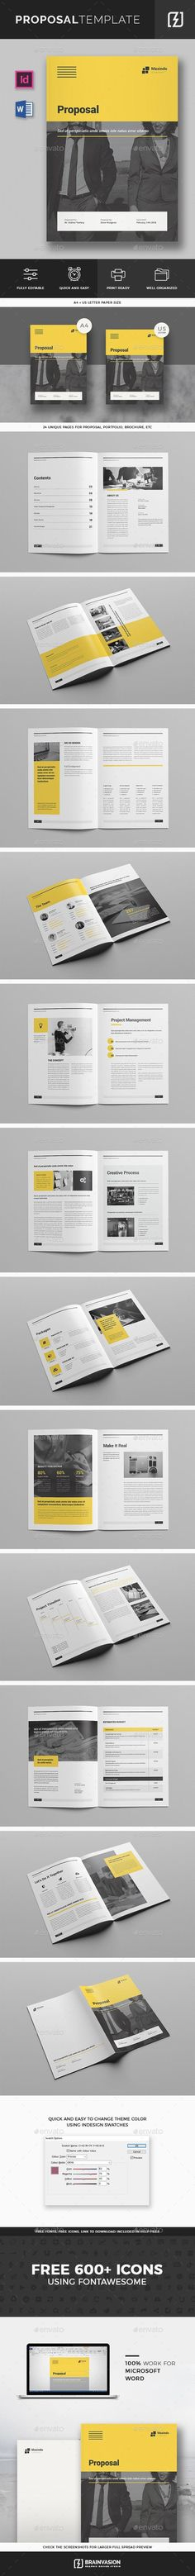 Proposal Template Microsoft Word The Most Popular Proposal Templates Ideas Are On Pinterest .